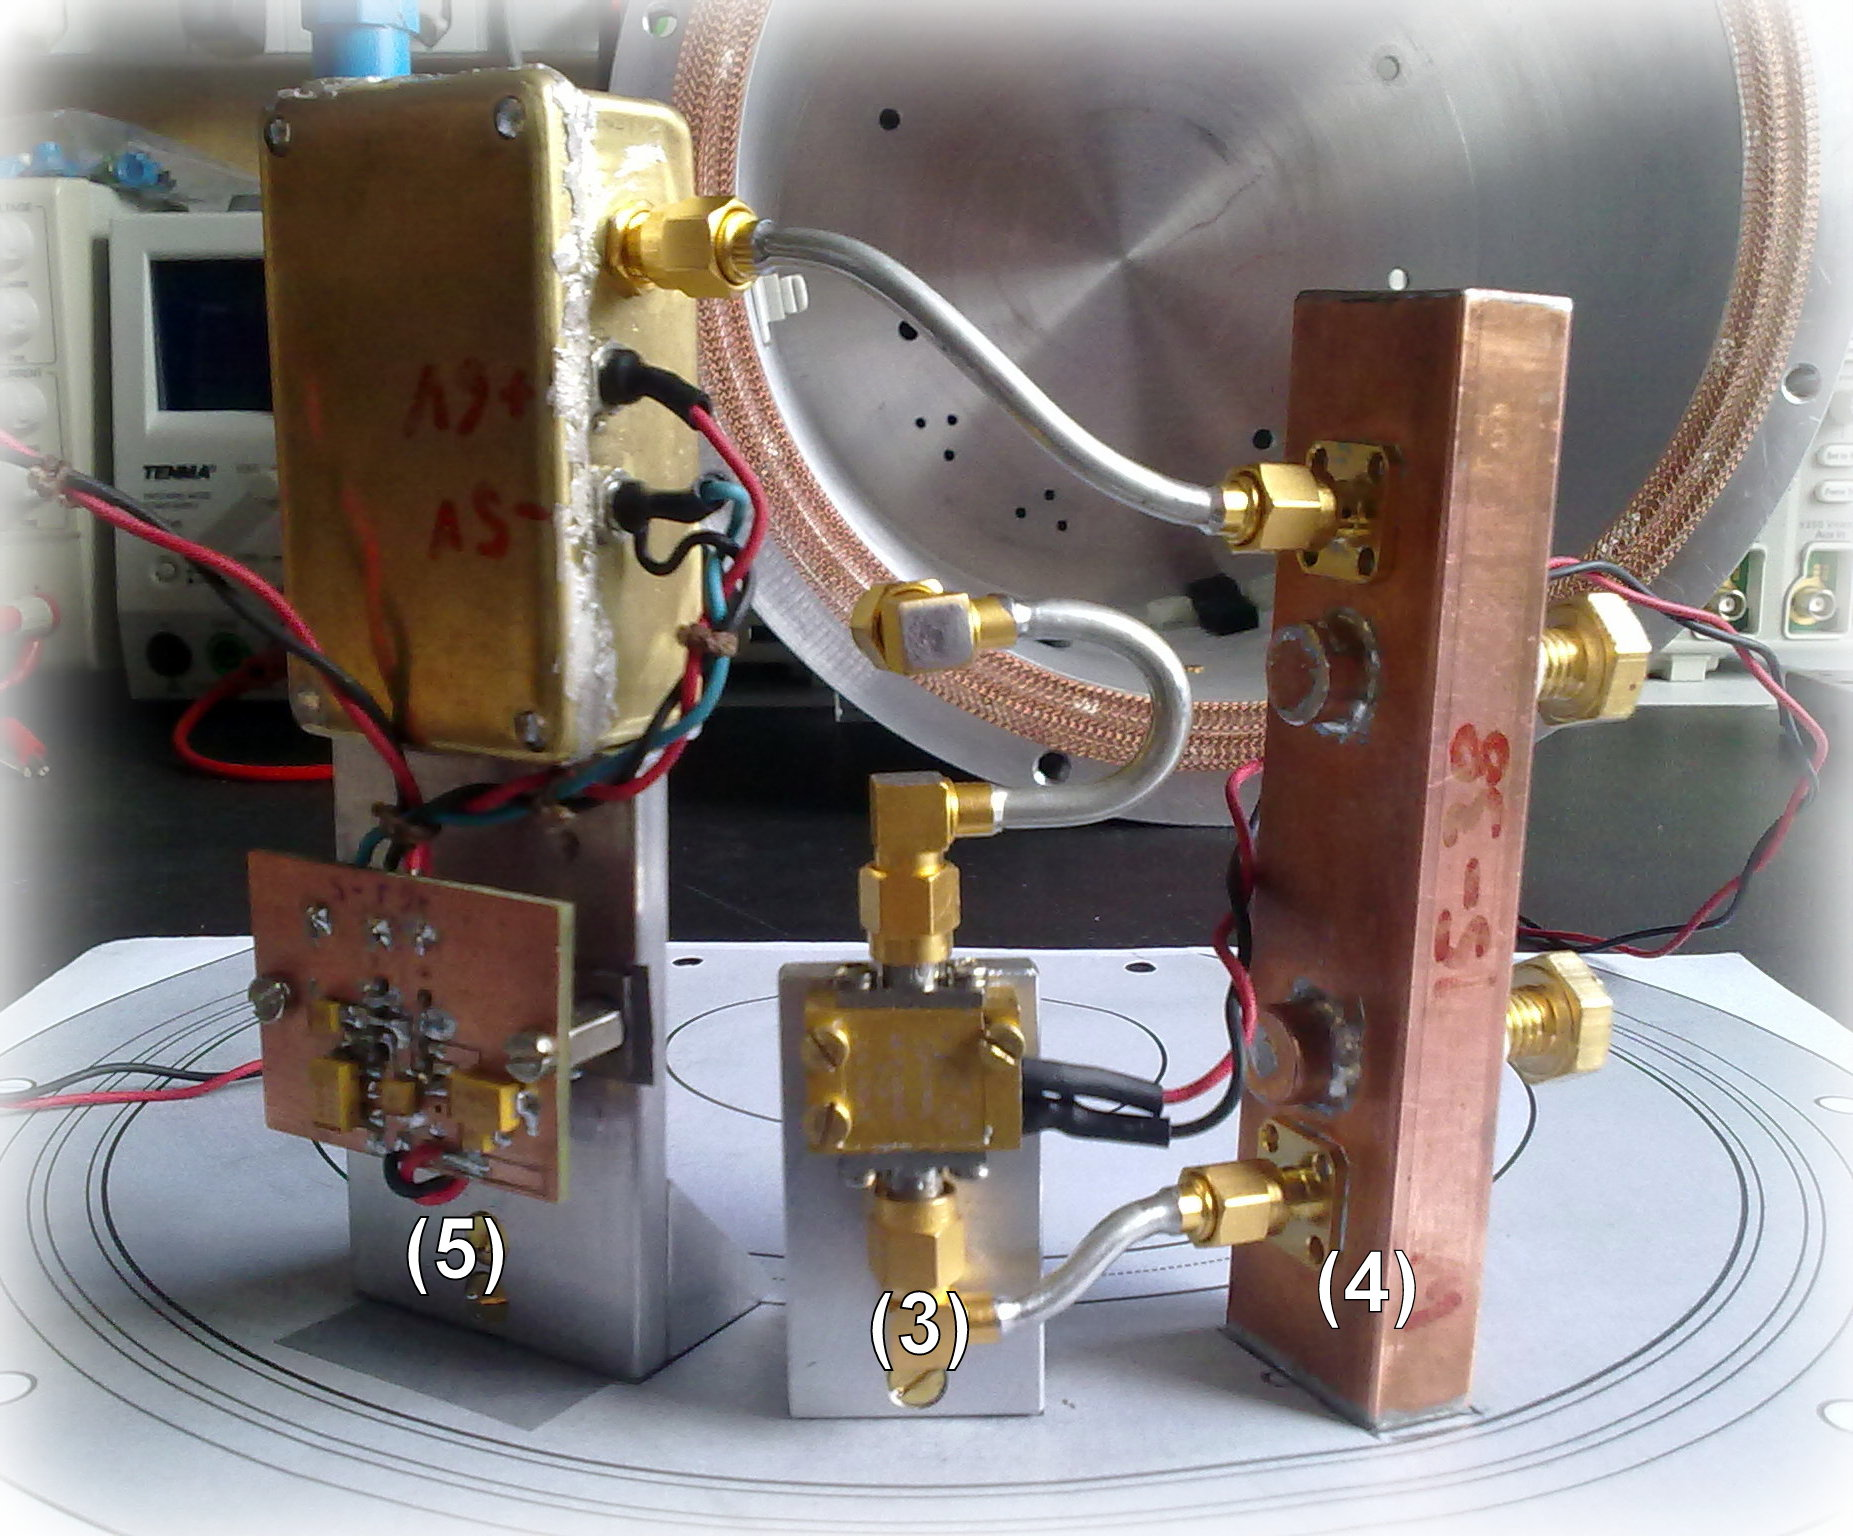 The components of the RF frontend, unmounted from the cavity shielding box. From left to right: Analog optical link, low noise amplifier and bandpass filter.